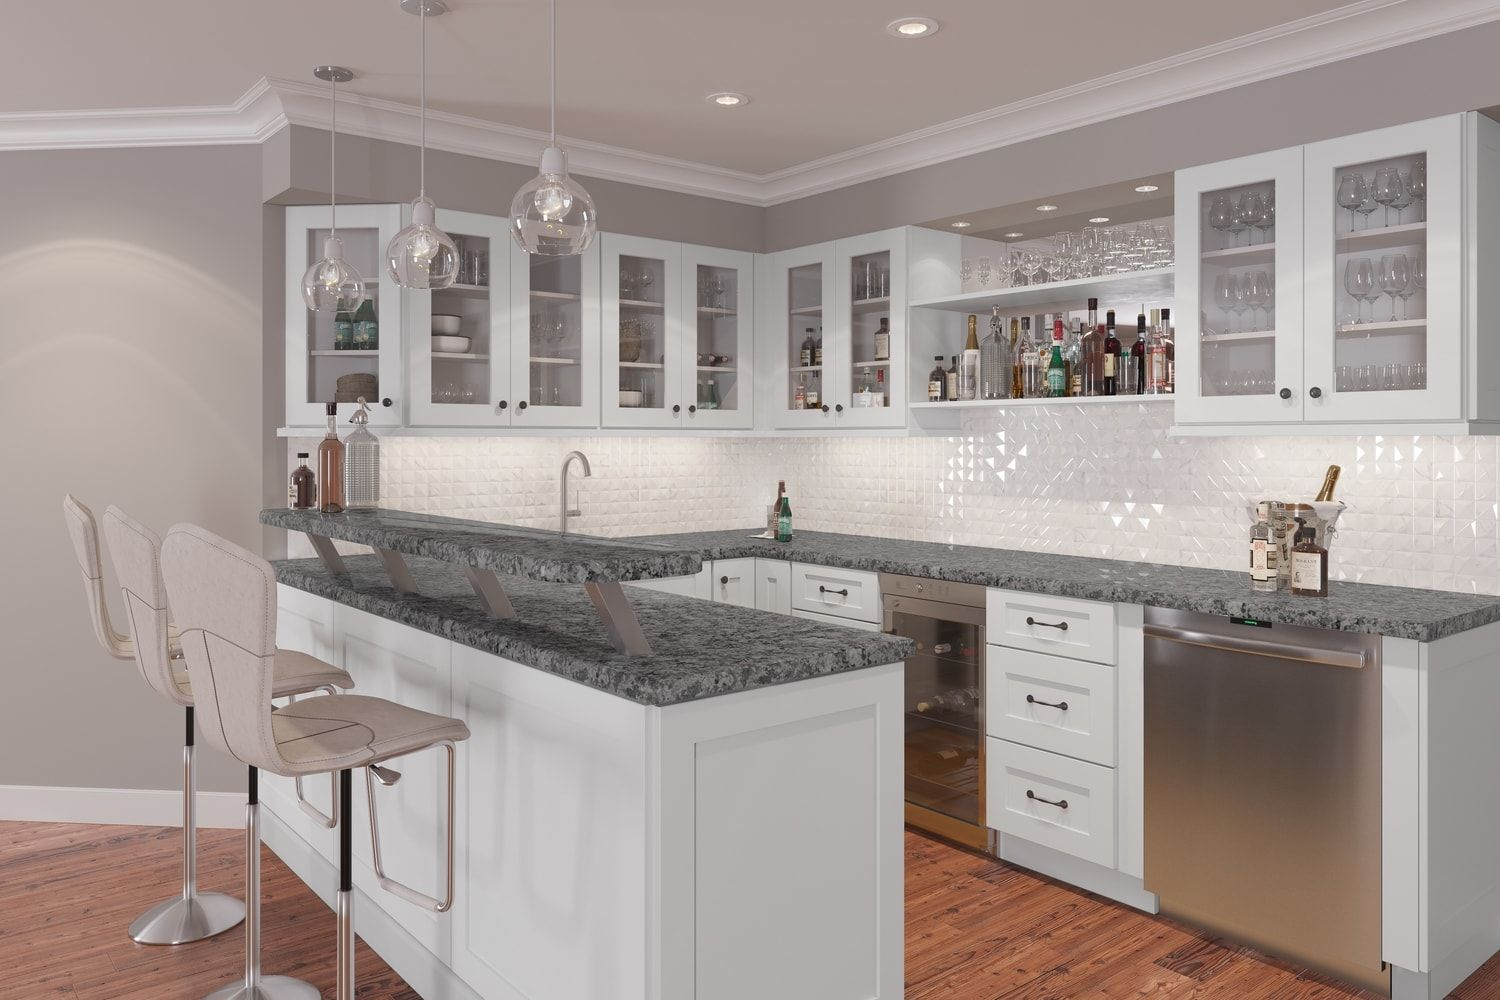 Arctic White Shaker Ready To Assemble Kitchen Cabinets Kitchen Cabinets Rta Kitchen Cabinets Assembled Kitchen Cabinets Kitchen Cabinets